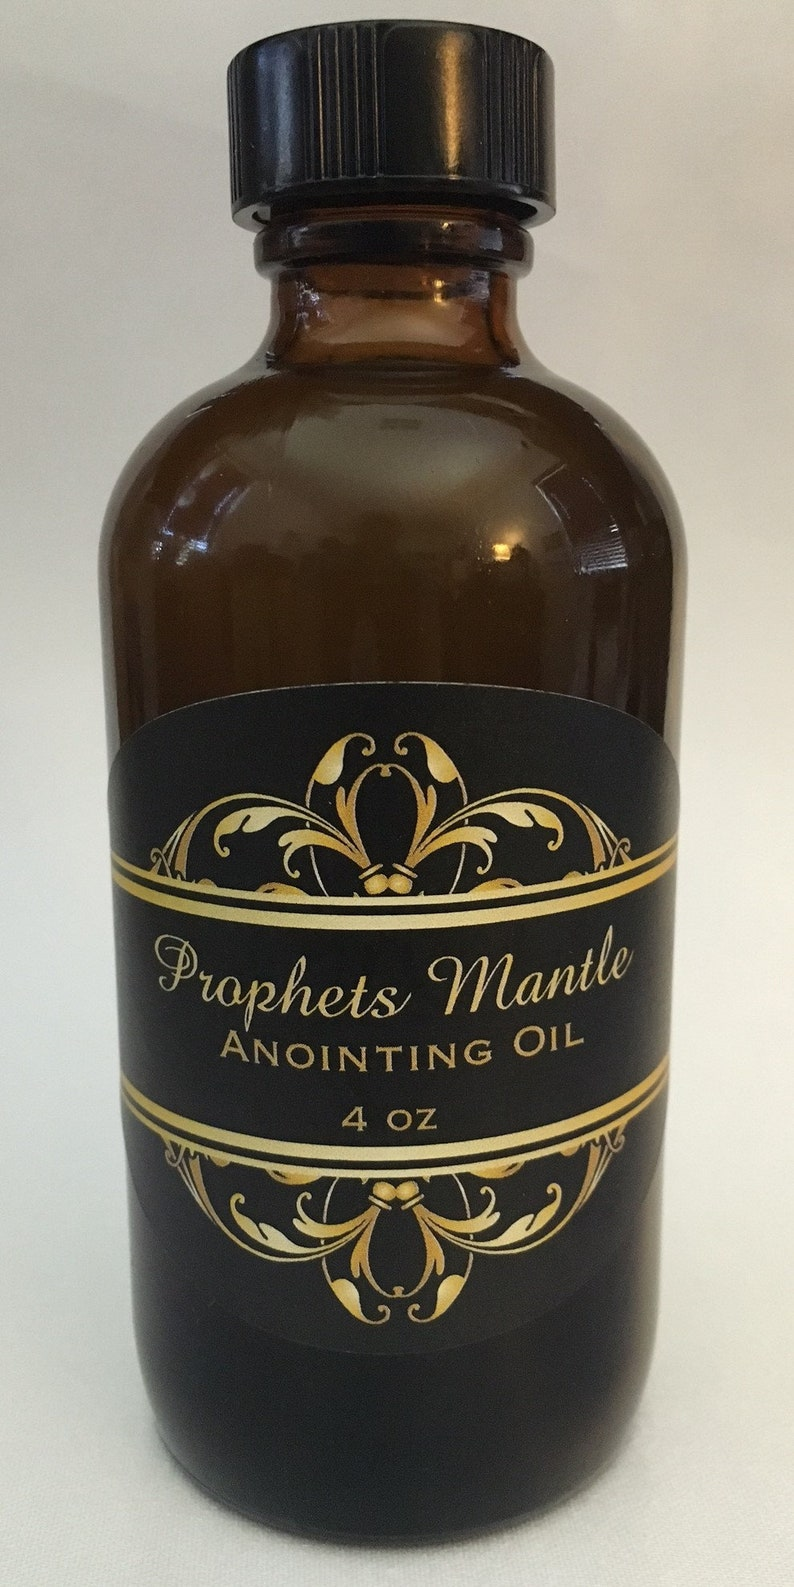 Prophets Mantle Anointing Oil in large 4 oz bottle